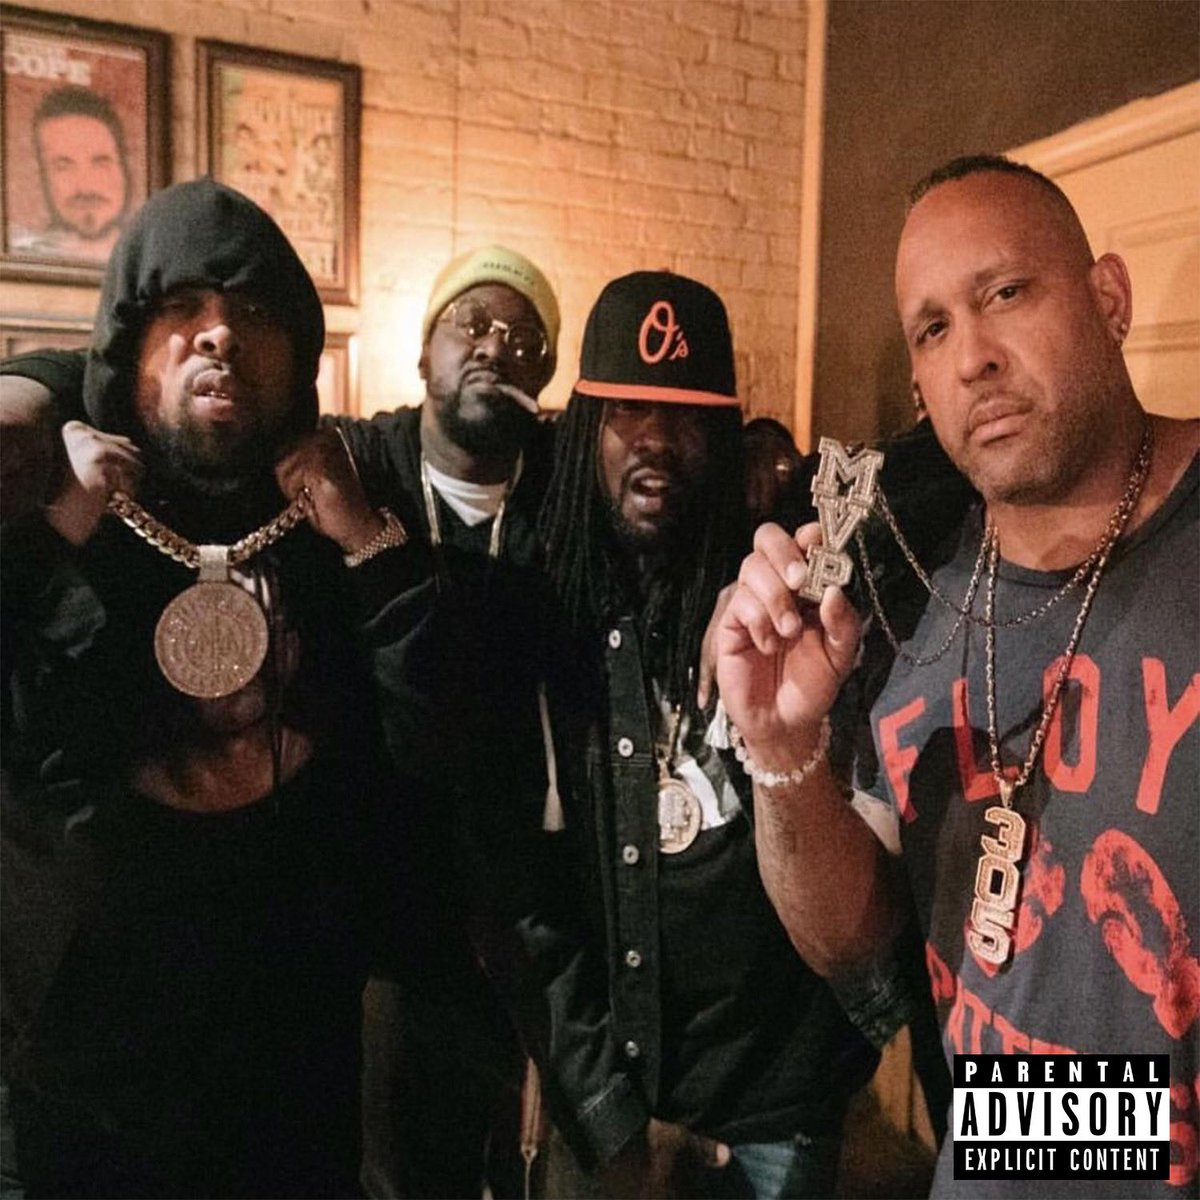 The HURT BUSINESS REMIX this Thurs. WSG x @smokedza x @Wale and the Man Himself @The305MVP ... business is BOOOOMIN #Culture #CONFLICTED #GXFR #RFC #4thRope @GriseldaRecords oh yea MVP killed this record 🤲🏽 #thehurtbusiness